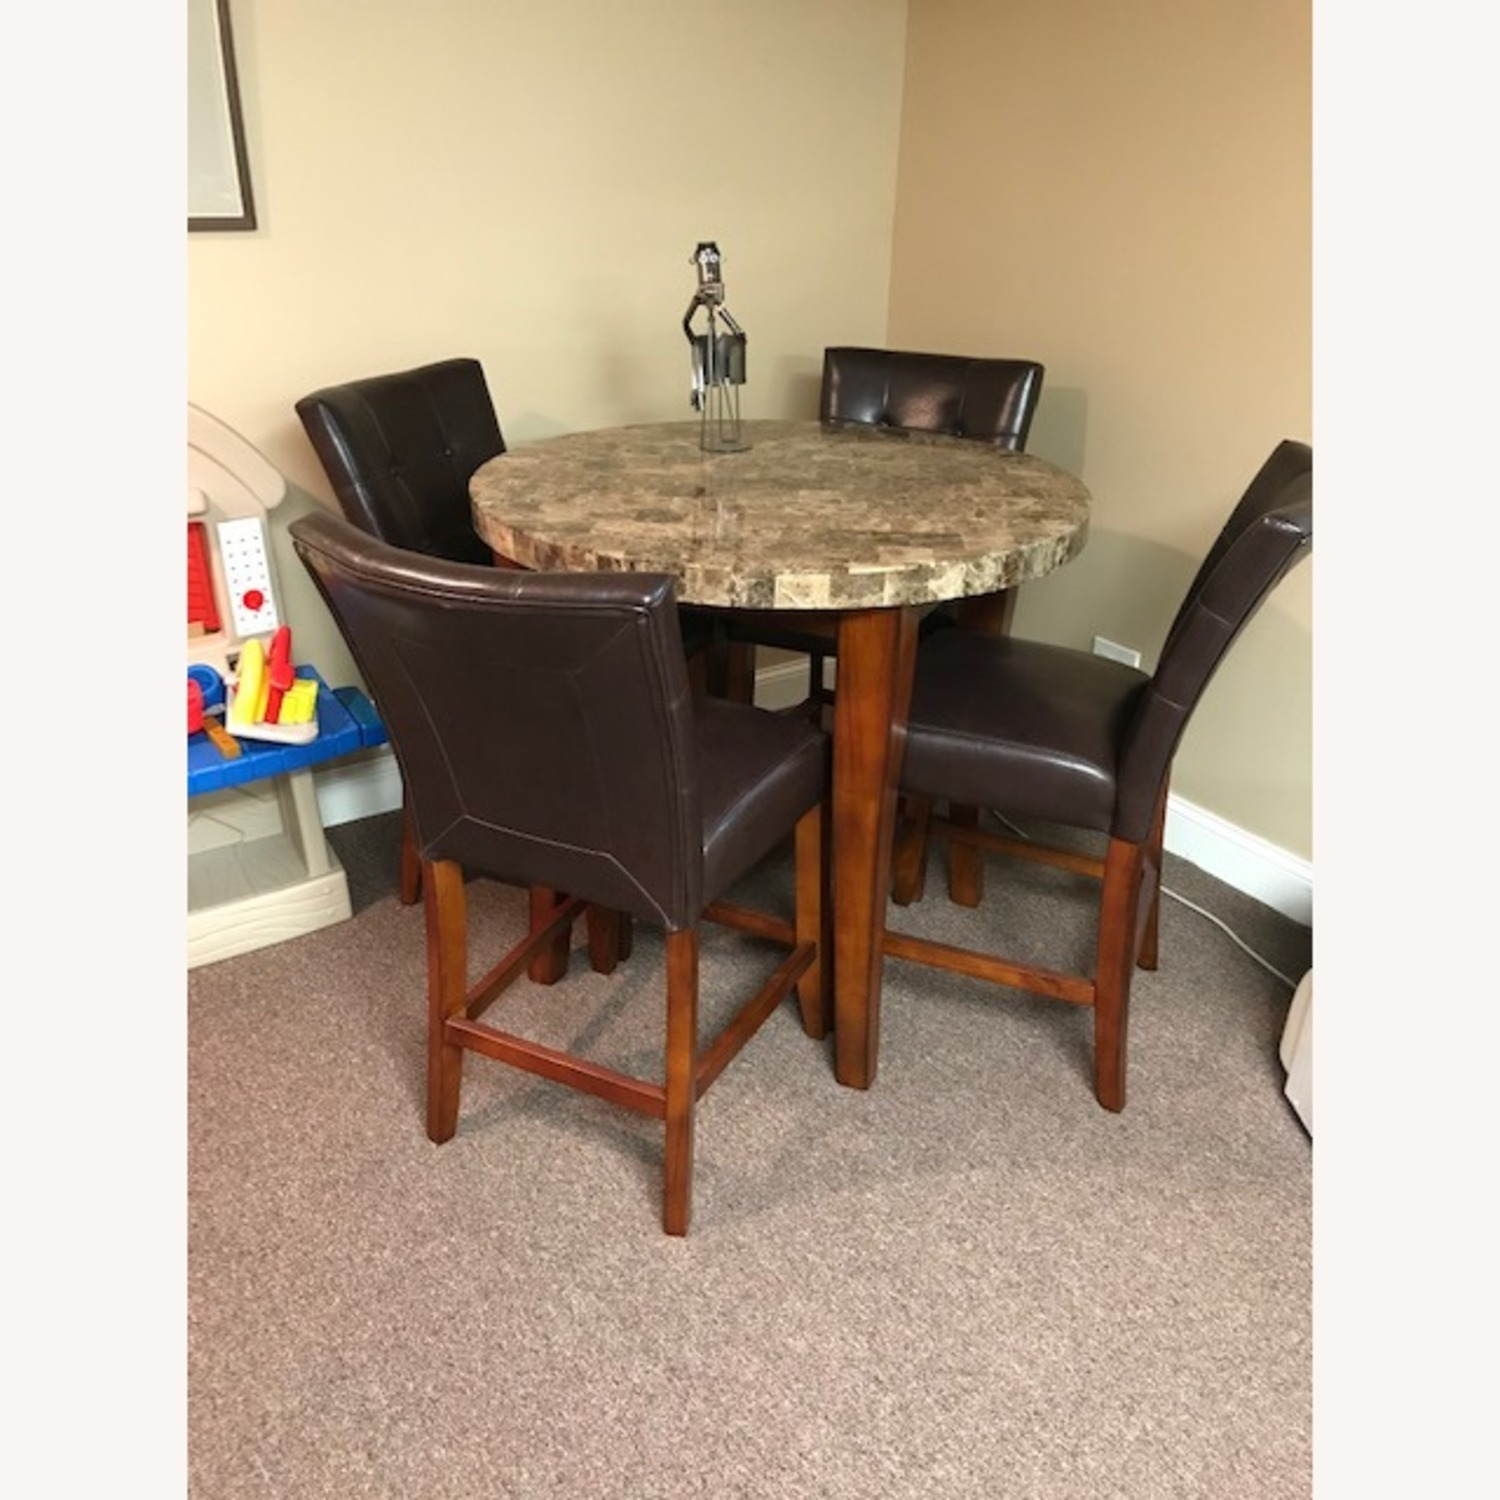 Bob's Discount Furniture Bar Table and 4 Stools - image-1